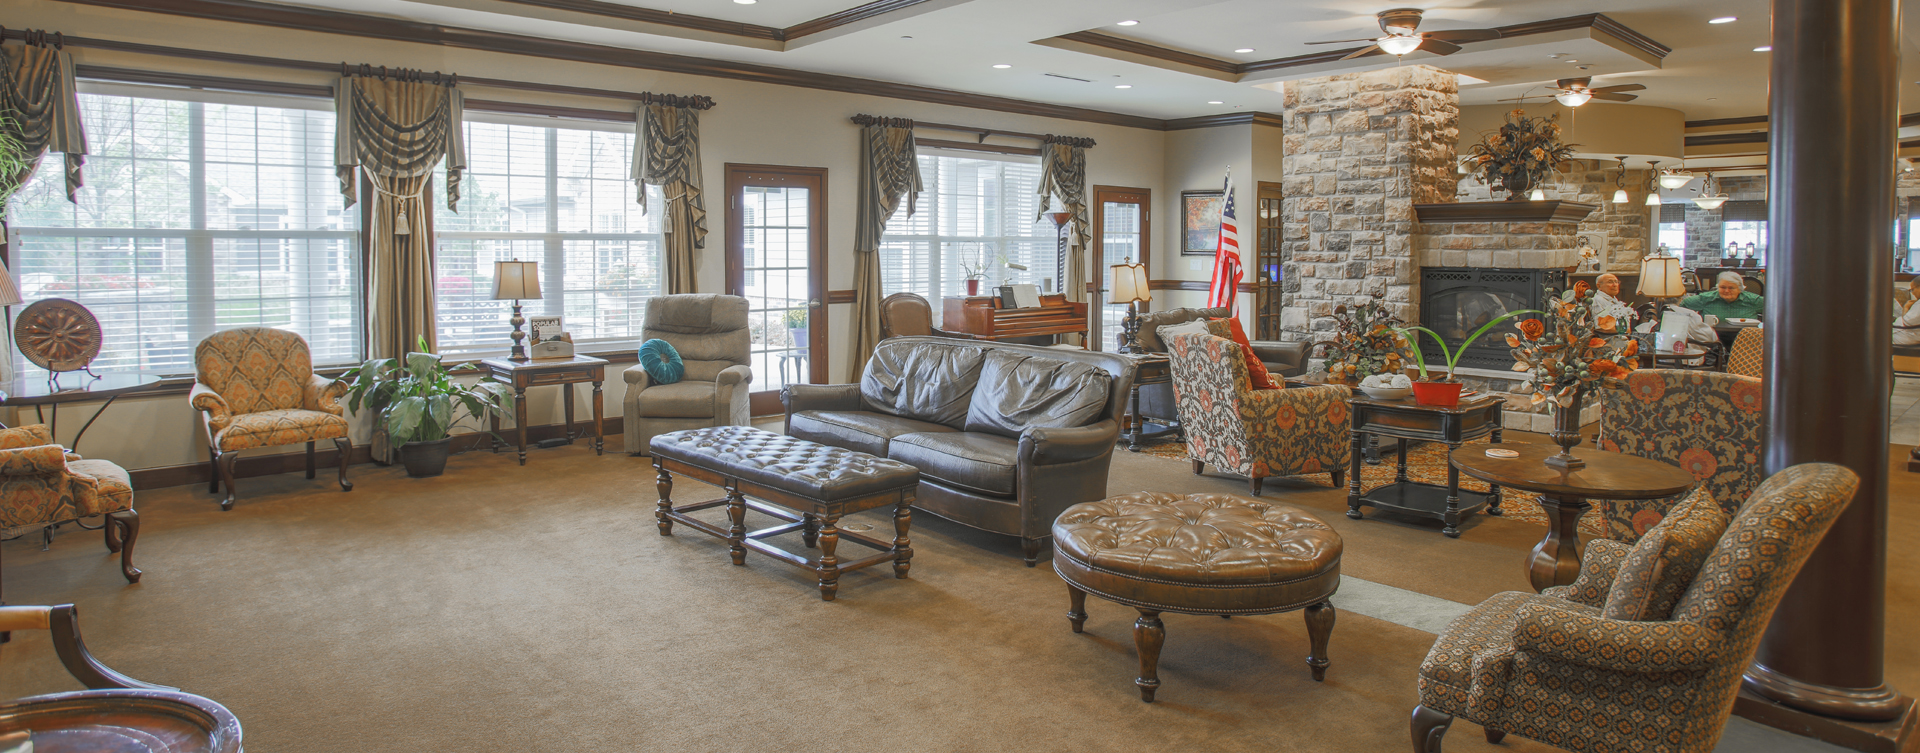 Socialize with friends in the living room at Bickford of Carmel